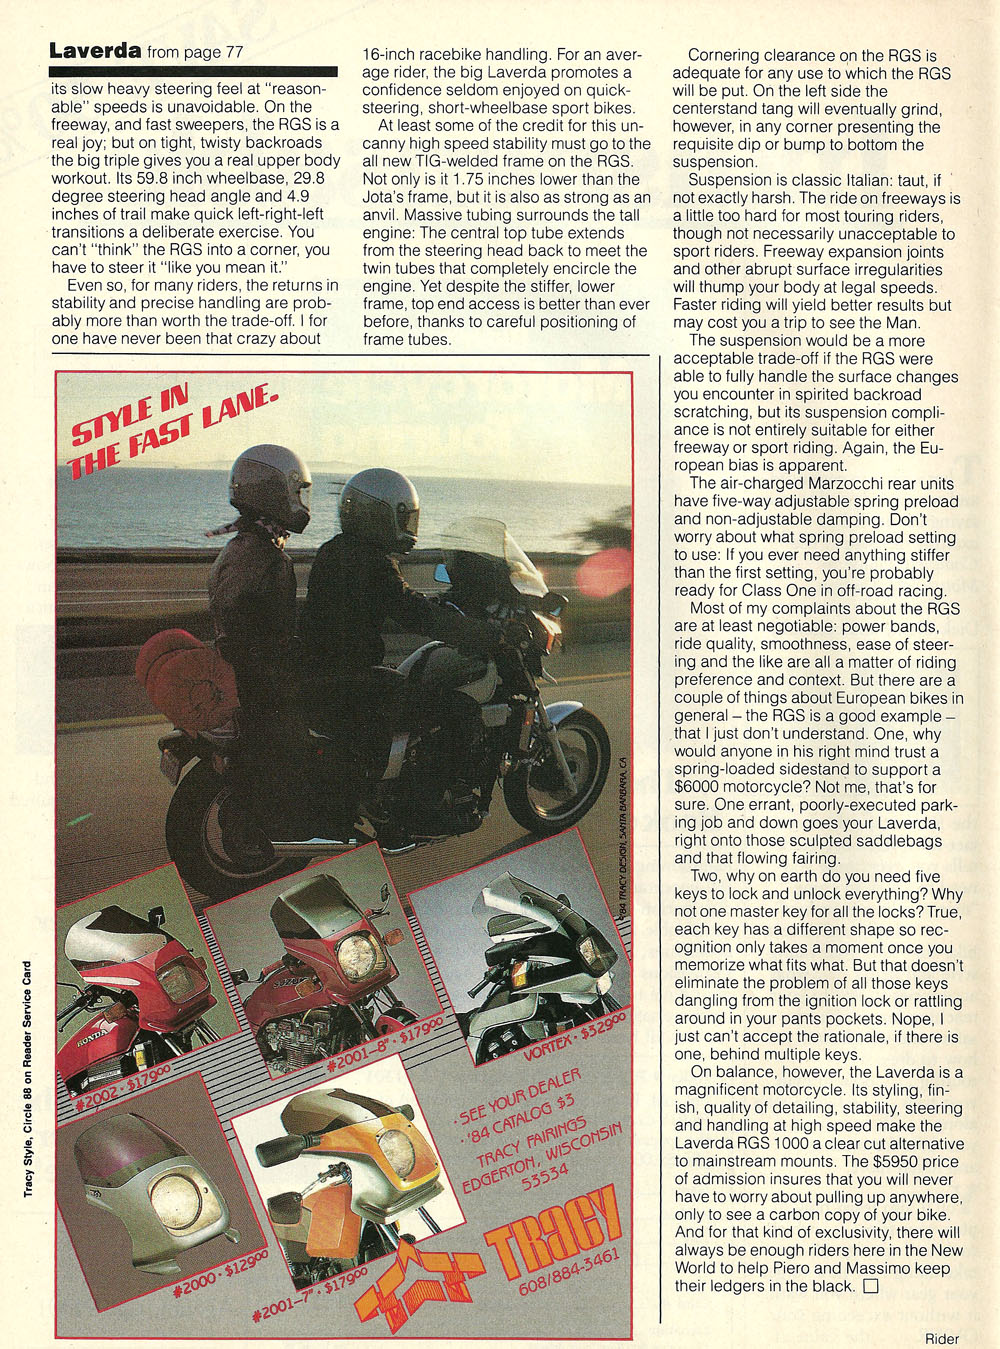 1984 Laverda RGS 1000 road test 05.jpg